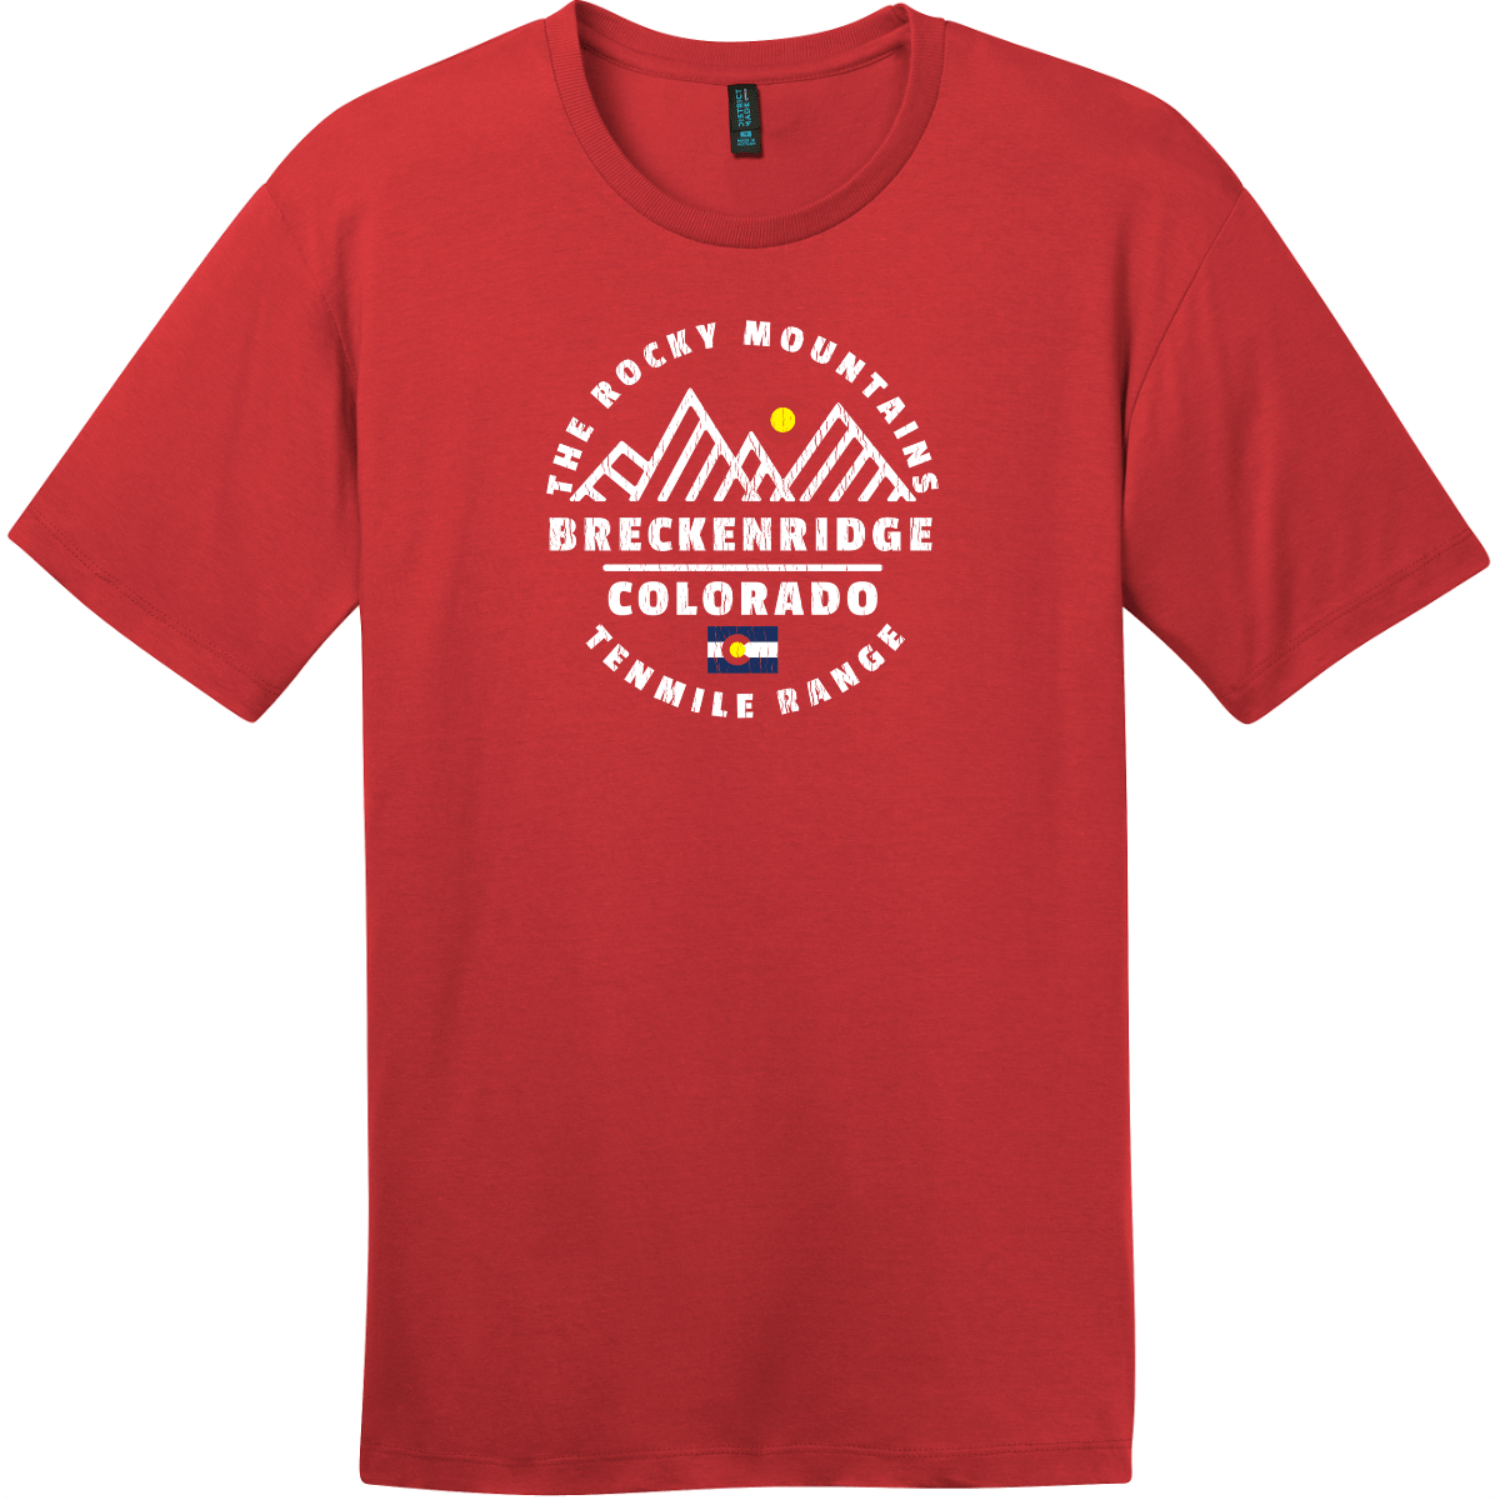 Breckenridge Tenmile Range Mountain T-Shirt Classic Red District Perfect Weight Tee DT104